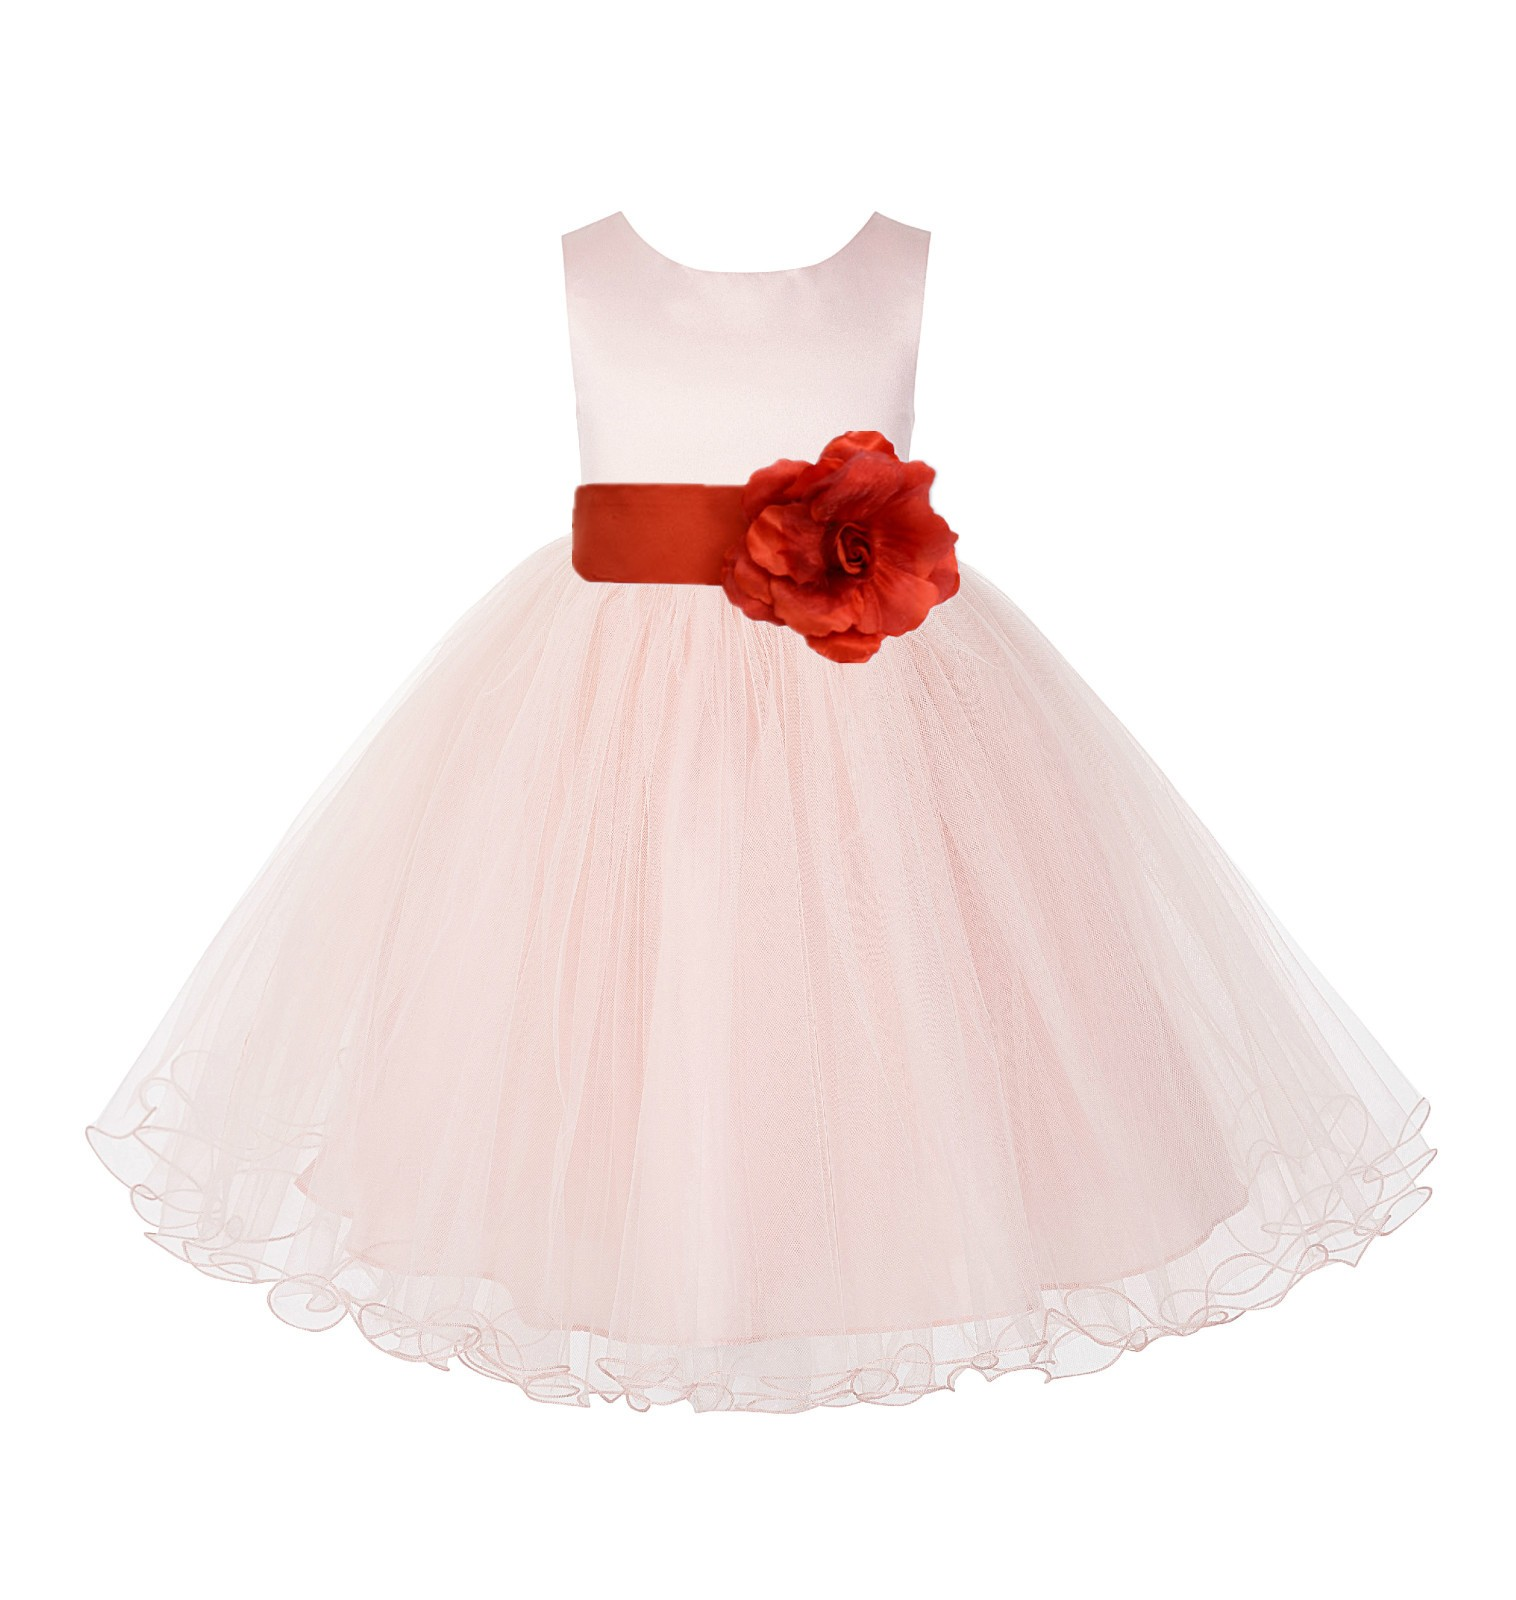 Blush PInk / Persimmon Tulle Rattail Edge Flower Girl Dress Wedding Bridesmaid 829T